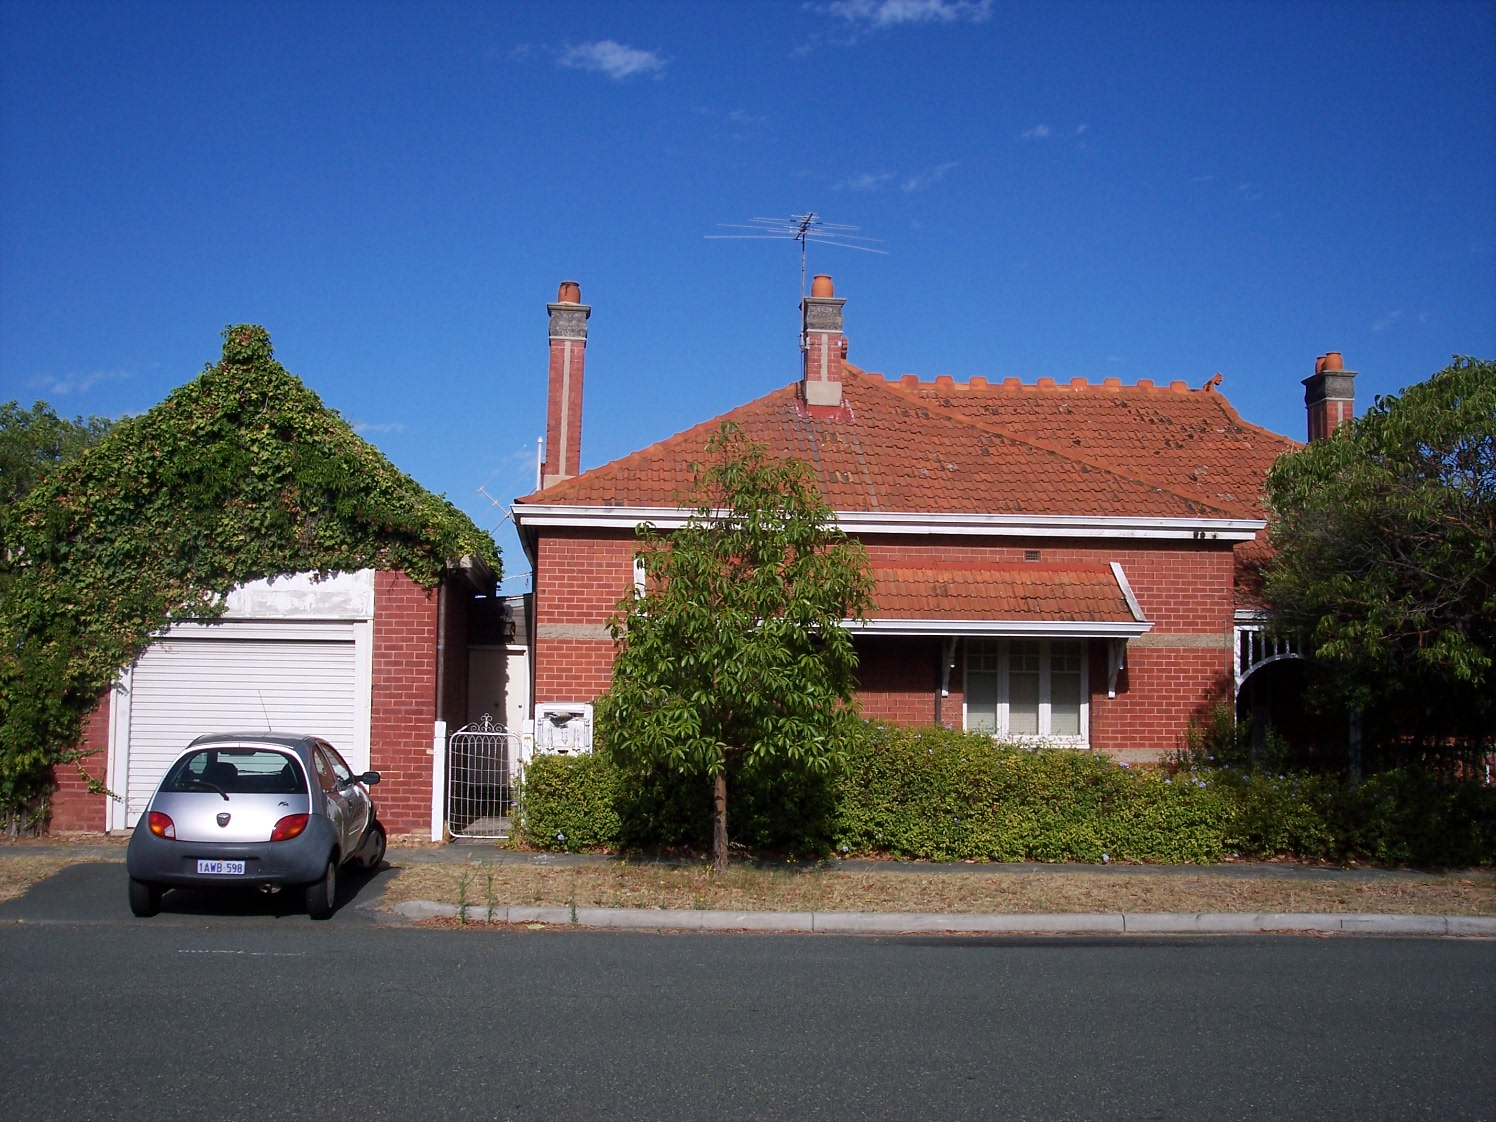 25-1-07 View W 171 Canning Highway.jpg